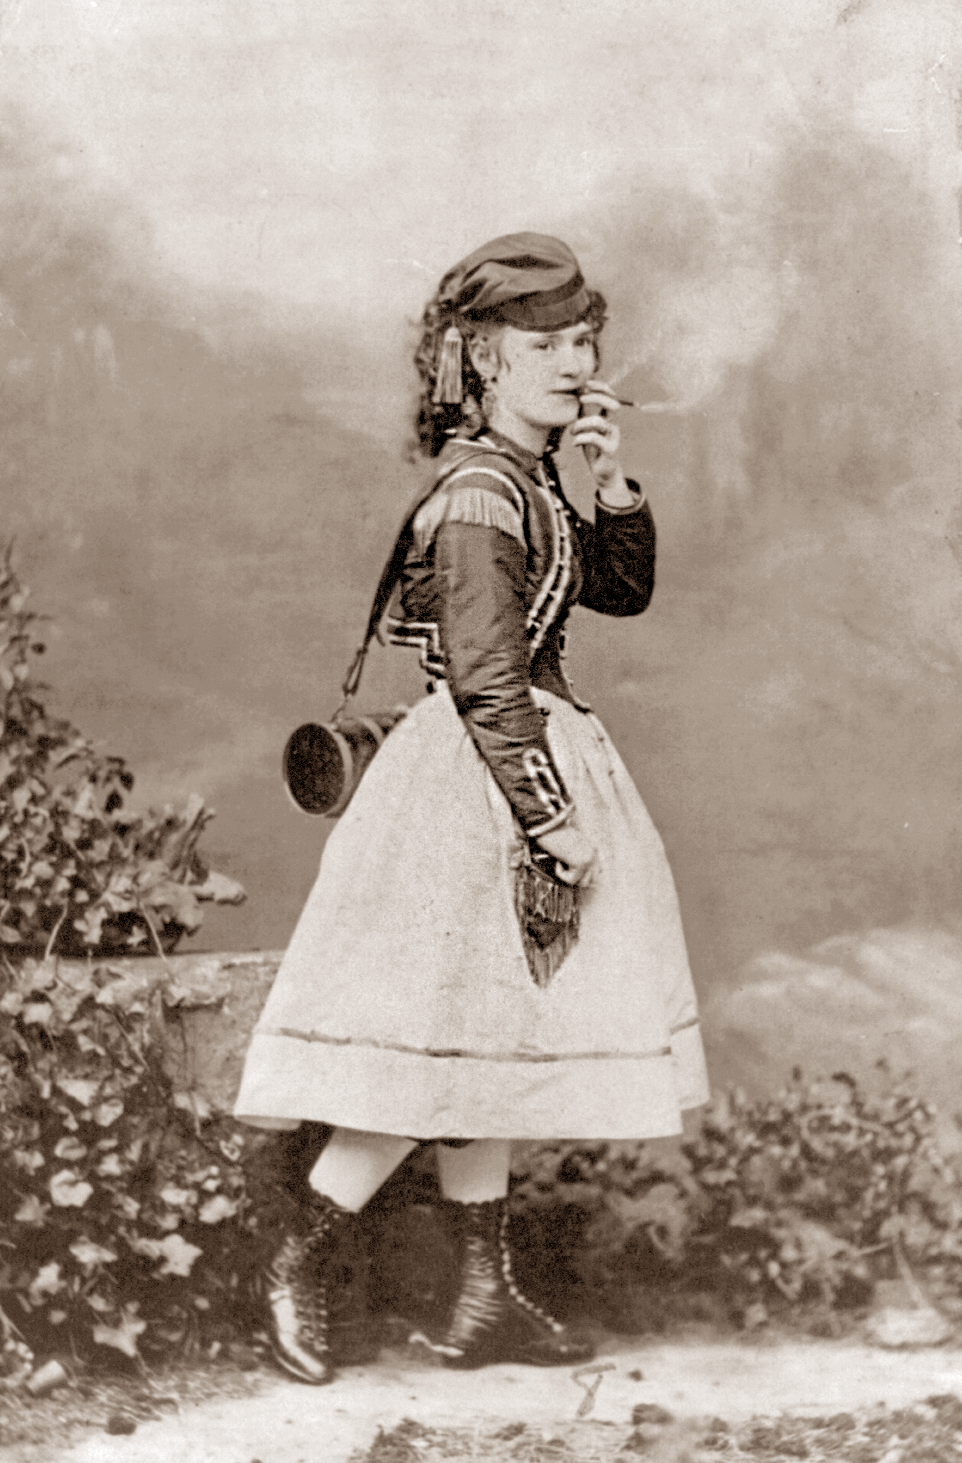 Actress Lotta Crabtree smoking, by Gurney, 1868 | Early Pictures